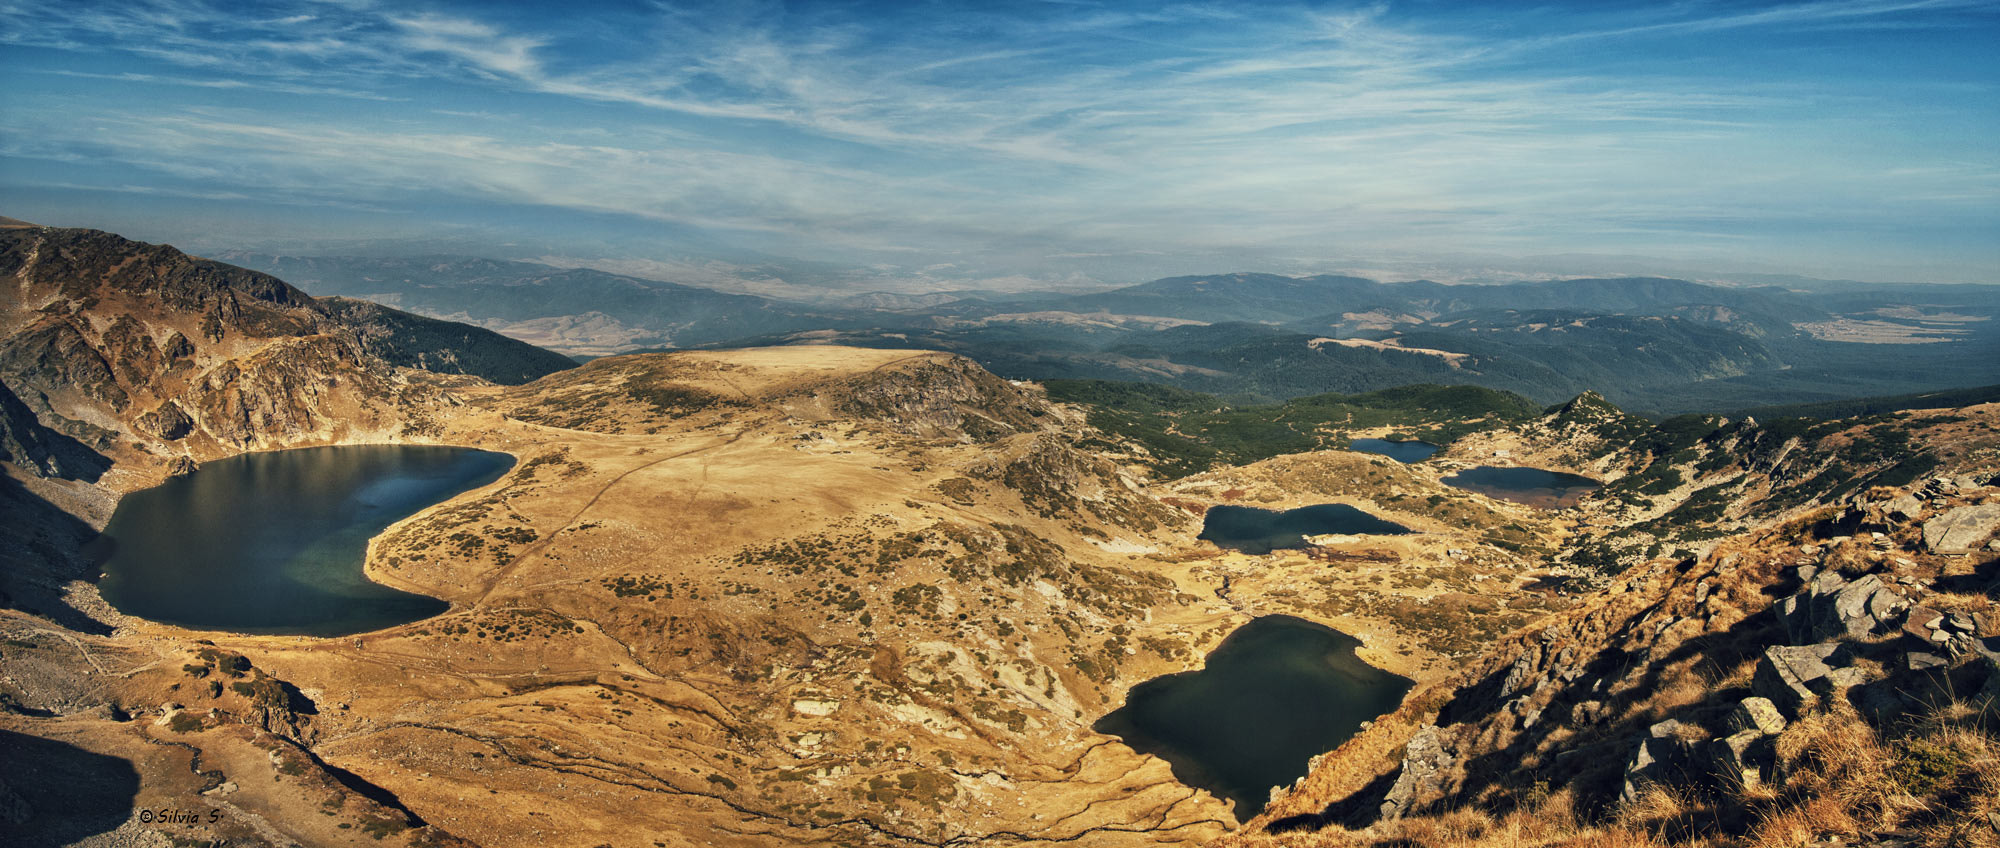 Photograph Five of Seven Rila's Lakes by Silvia S. on 500px